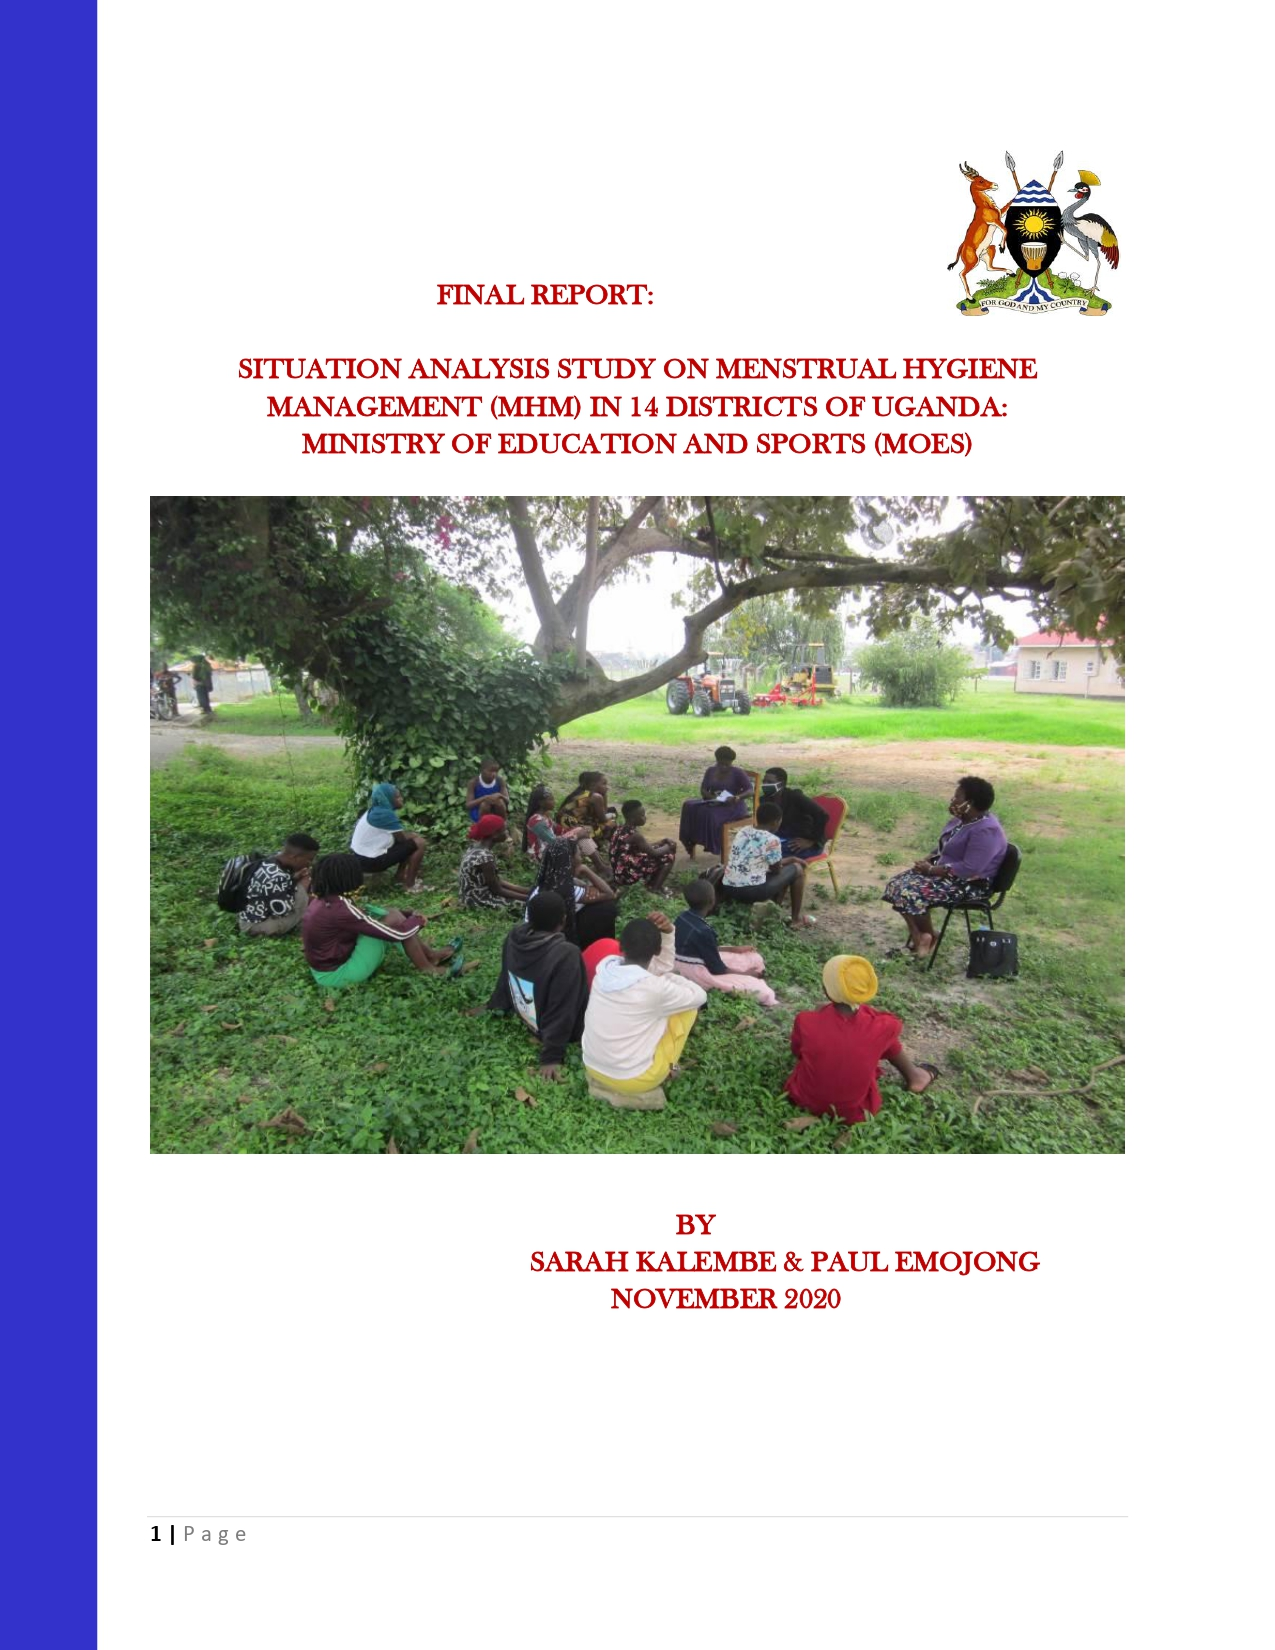 Situational Analysis Study on Menstrual Hygiene Management (MHM) in 14 Districts of Uganda